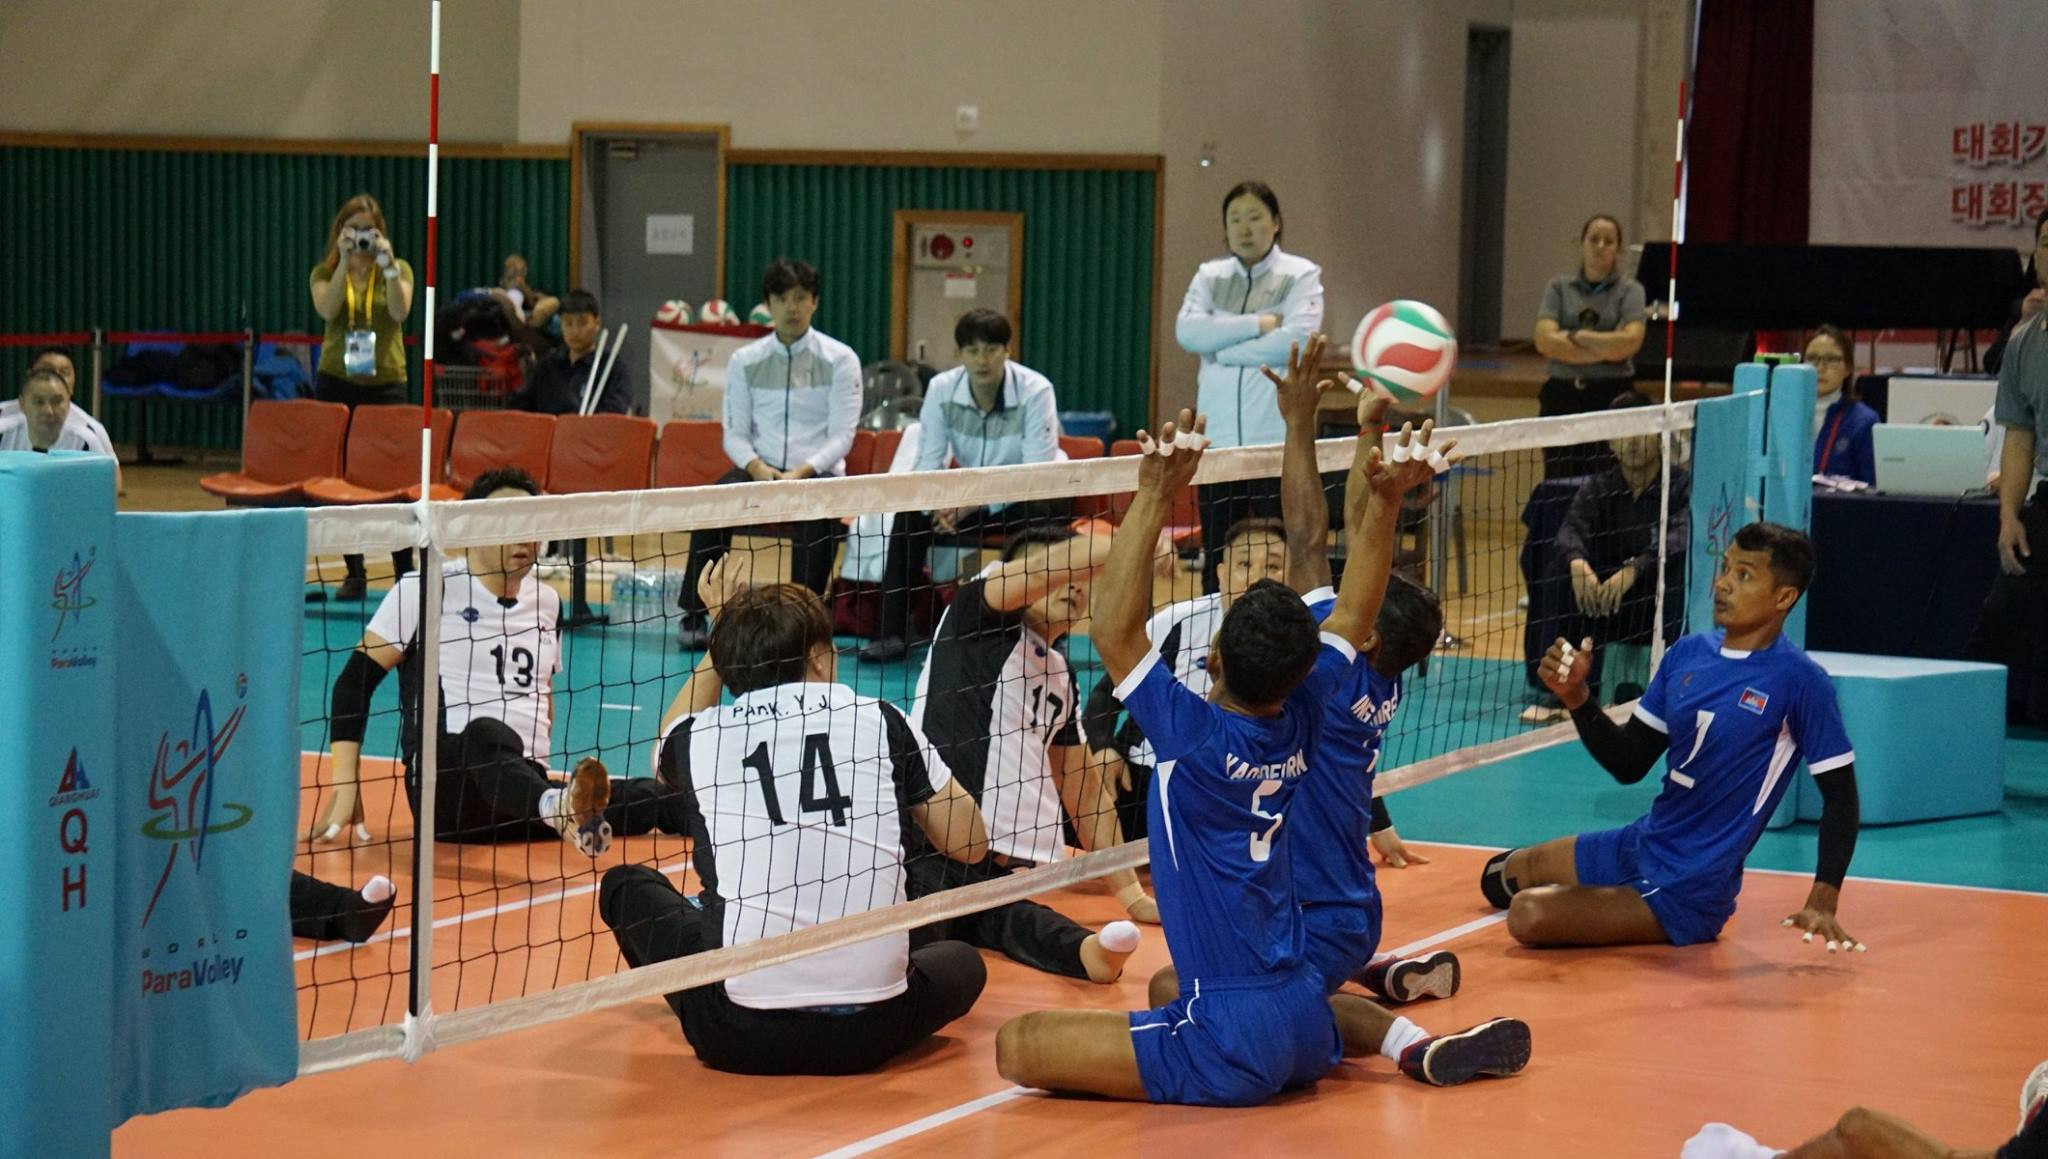 South Korea delight home crowd with second victory in as many games at final qualifier for 2018 Sitting Volleyball World Championships